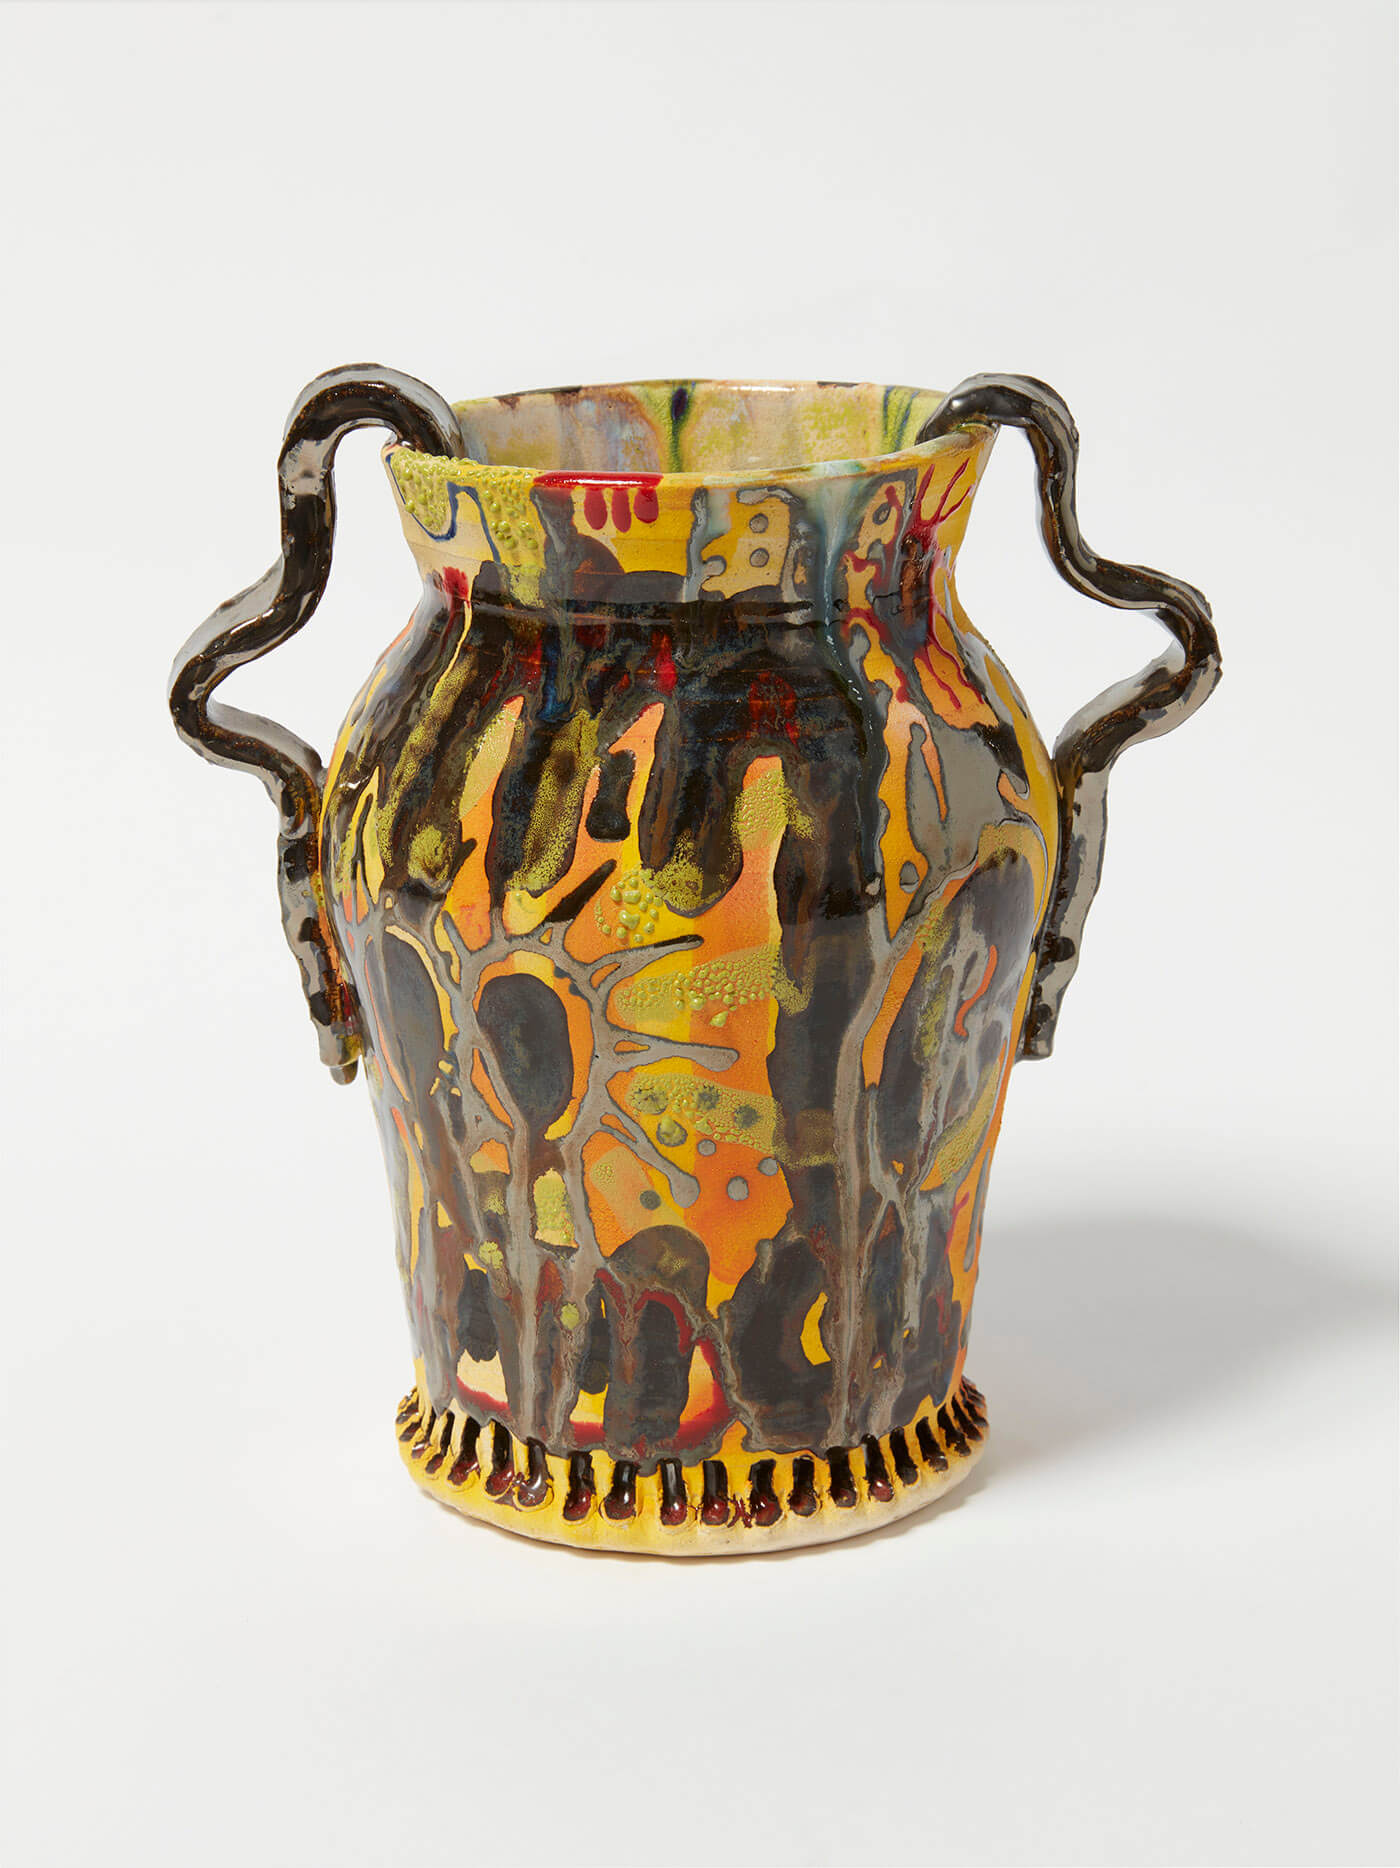 Farrag, Star-Eyed Simpson Jug, 2018 (SF 18.022) C